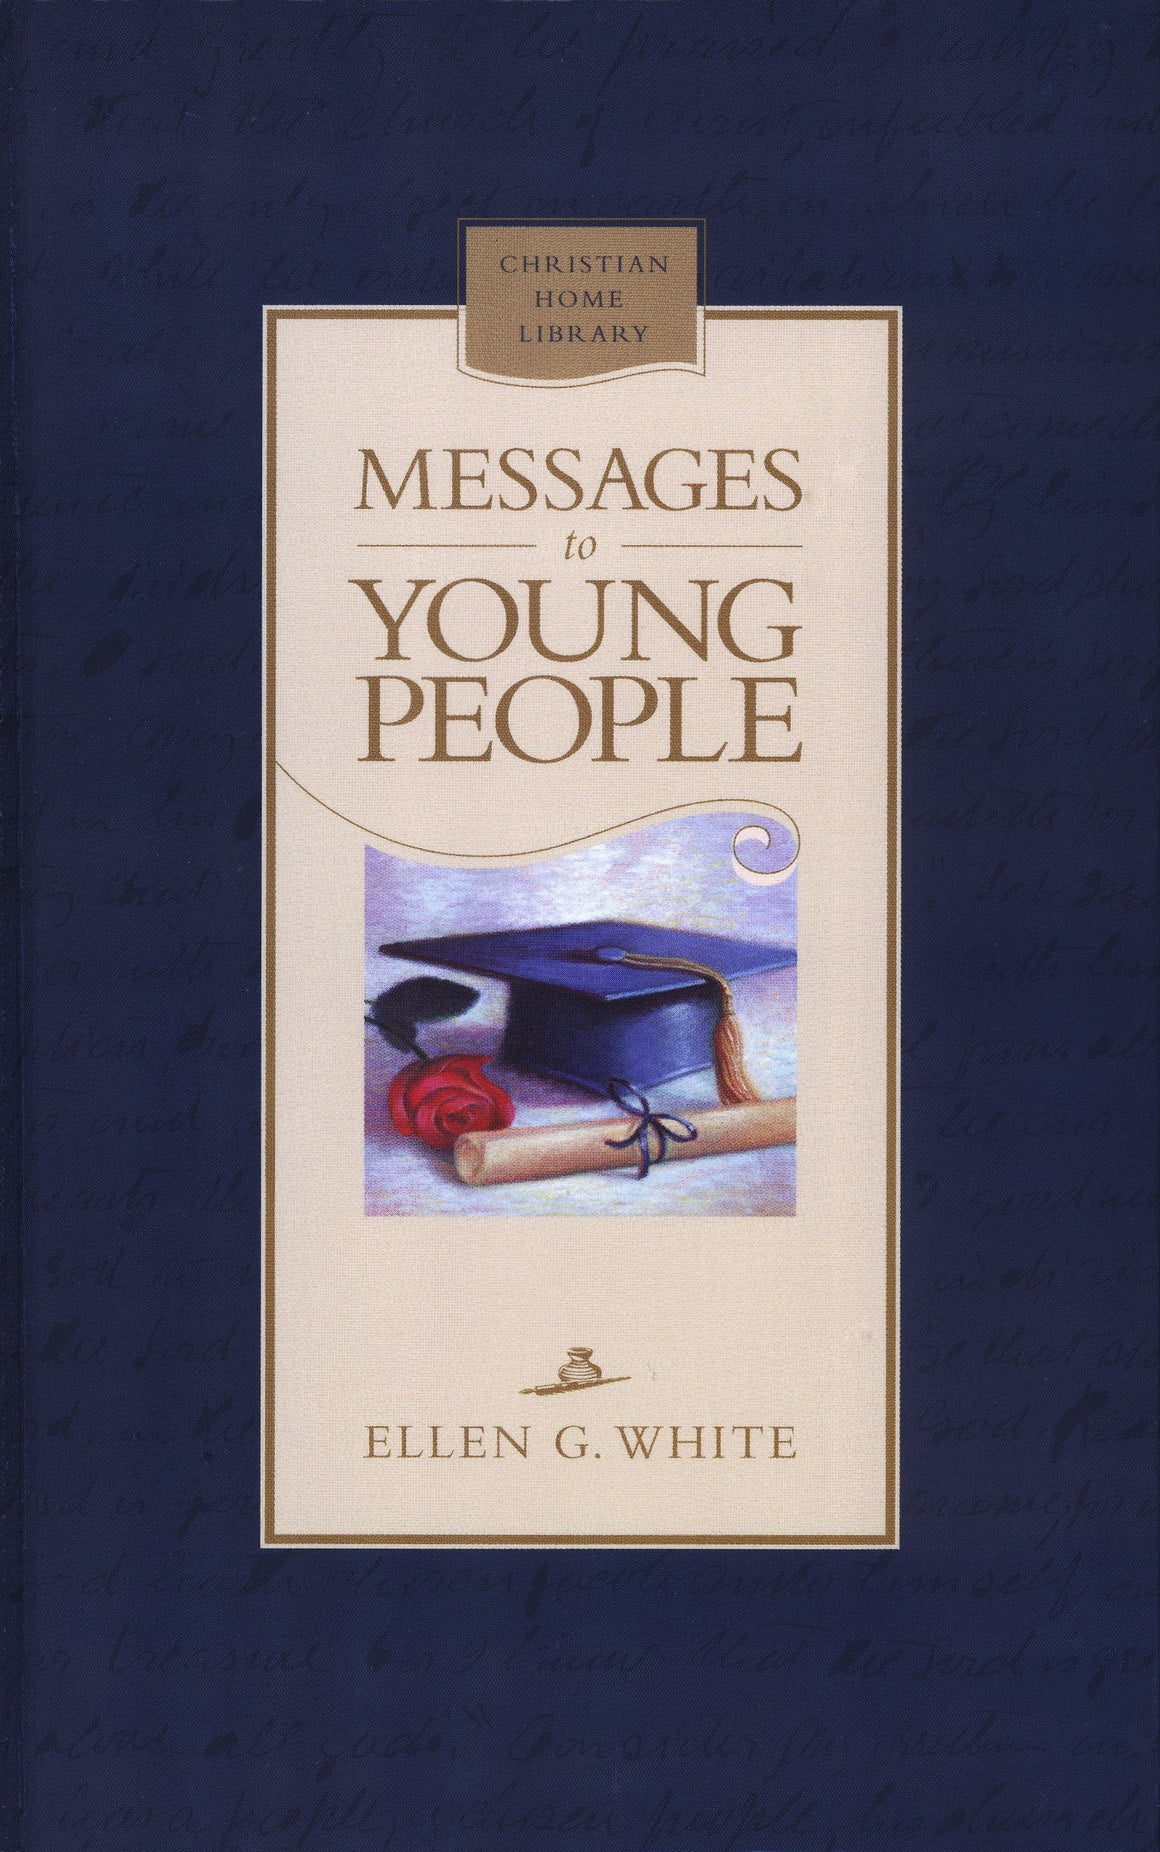 Messages to Young People, CHL